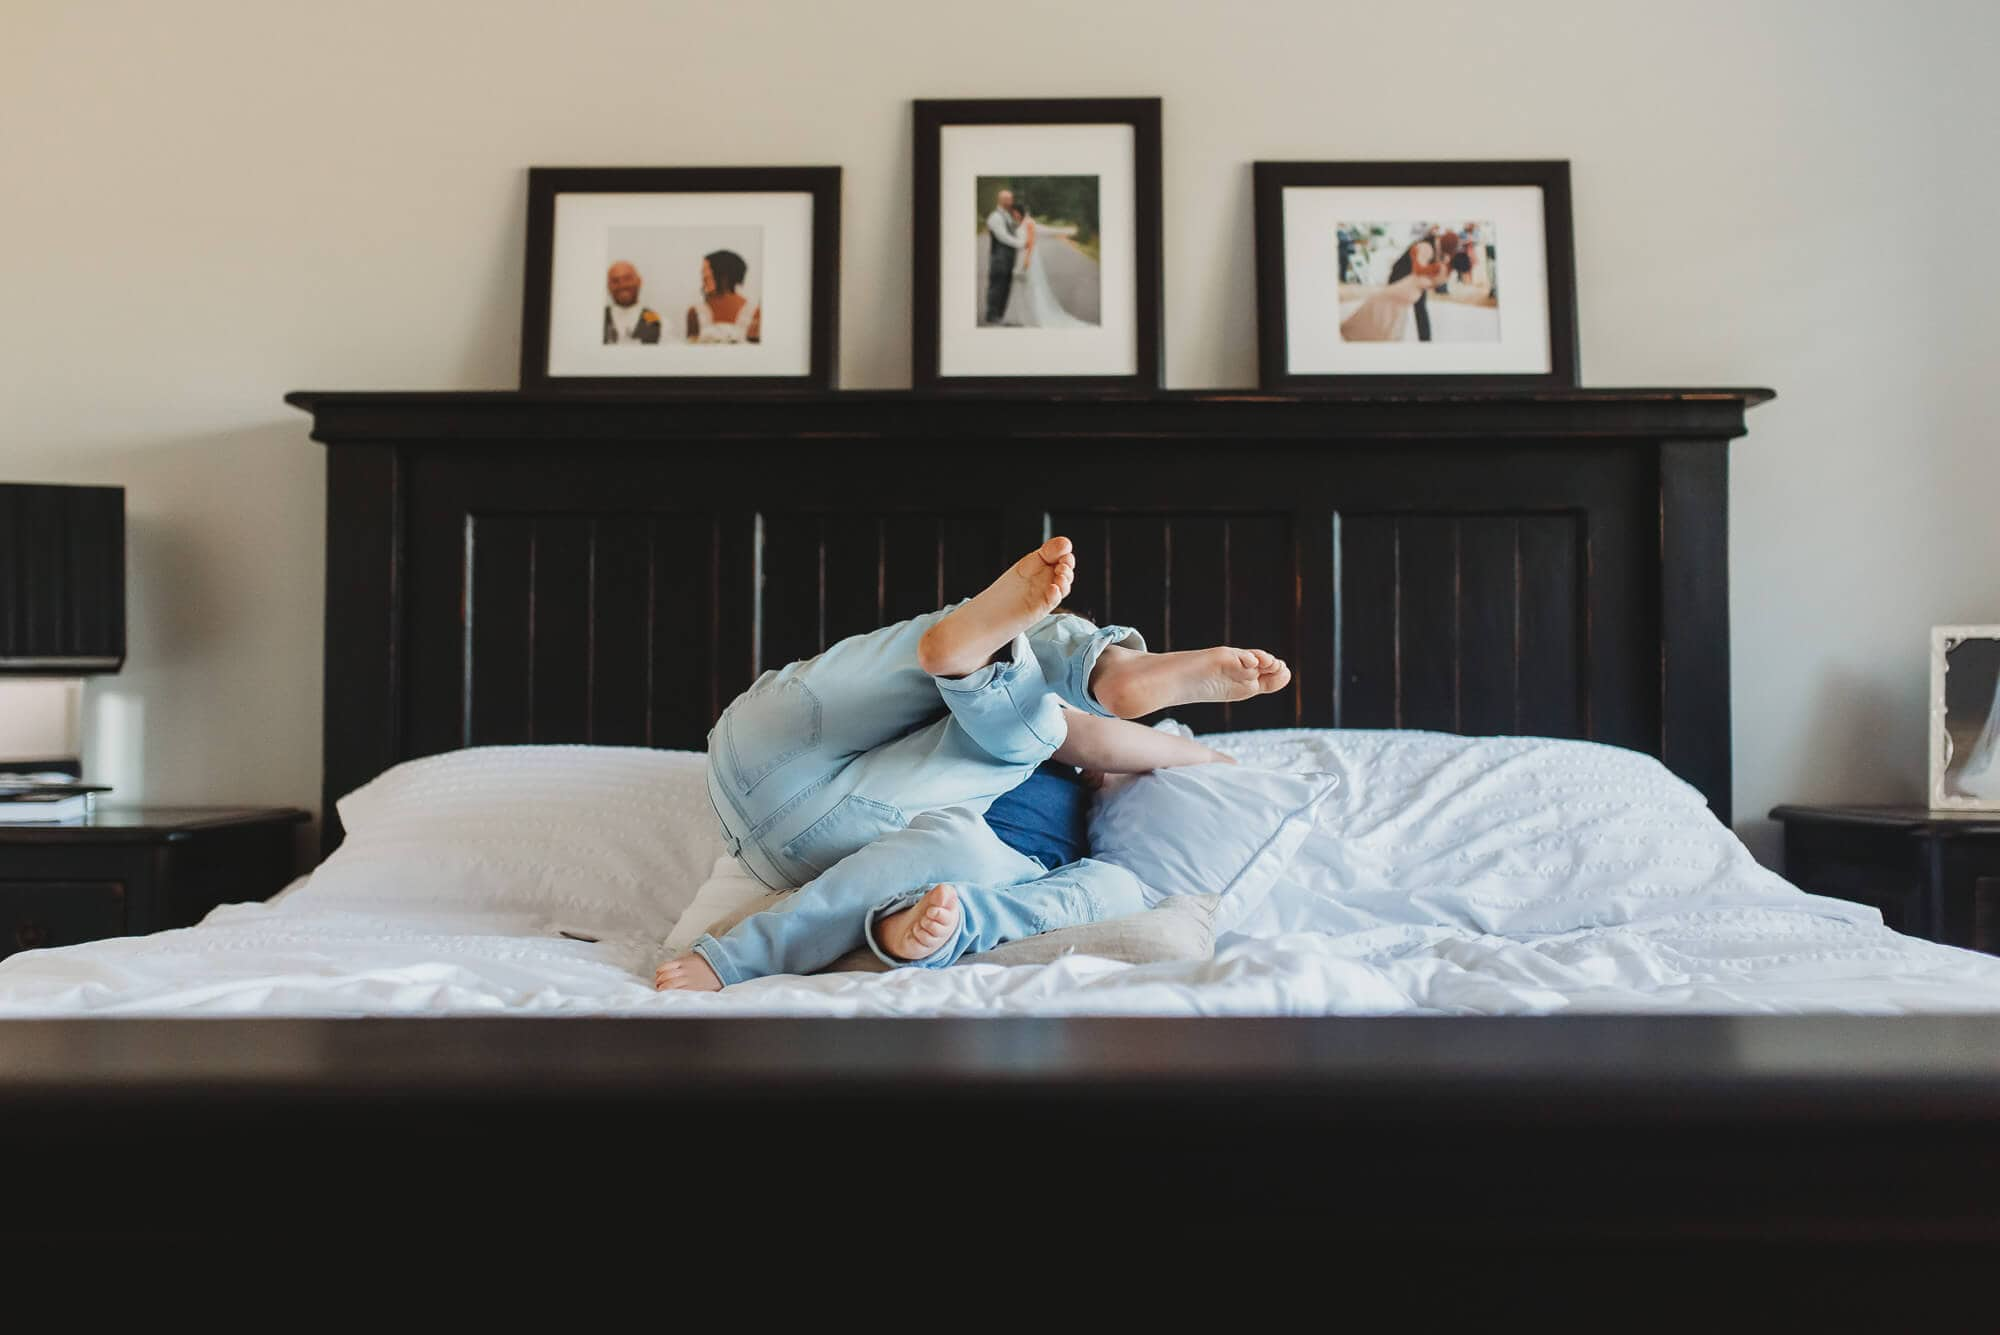 boys tumble on bed Vancouver Family Photographer